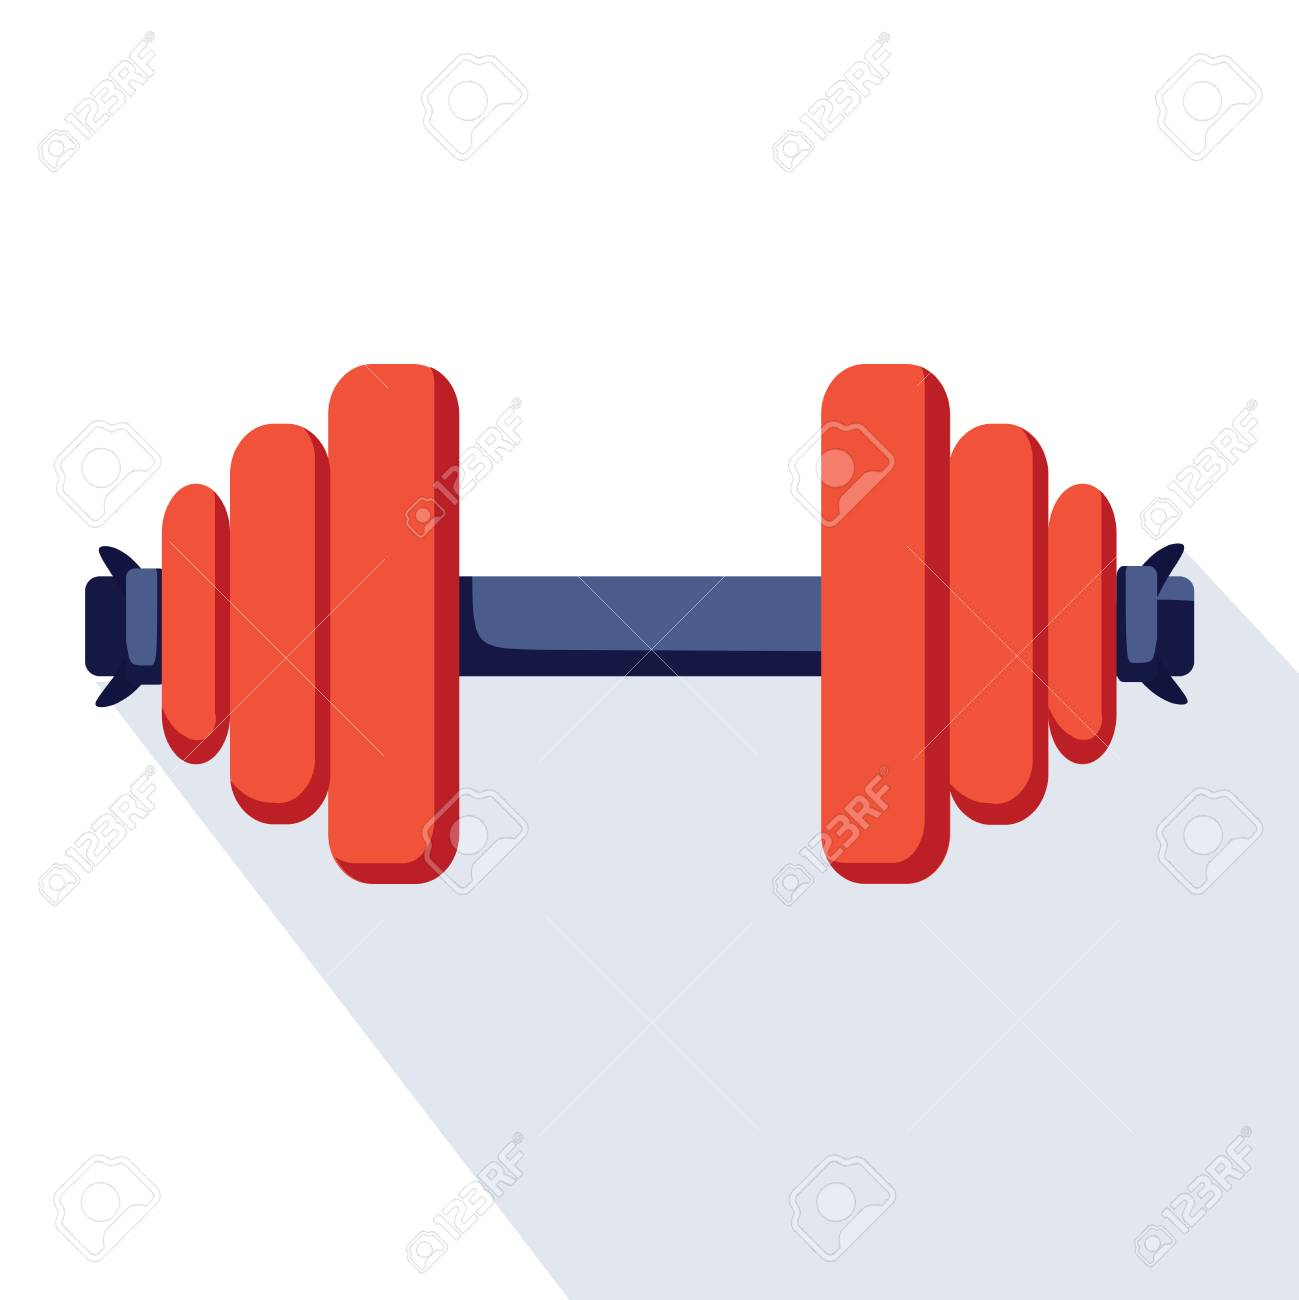 Sport dumbell icon. Flat illustration of sport dumbell vector icon for web design. Sport app logo, bodybuilding and fitness, healthcare concept. Athletic excercises prograpp sign with dumb bell. - 125733799